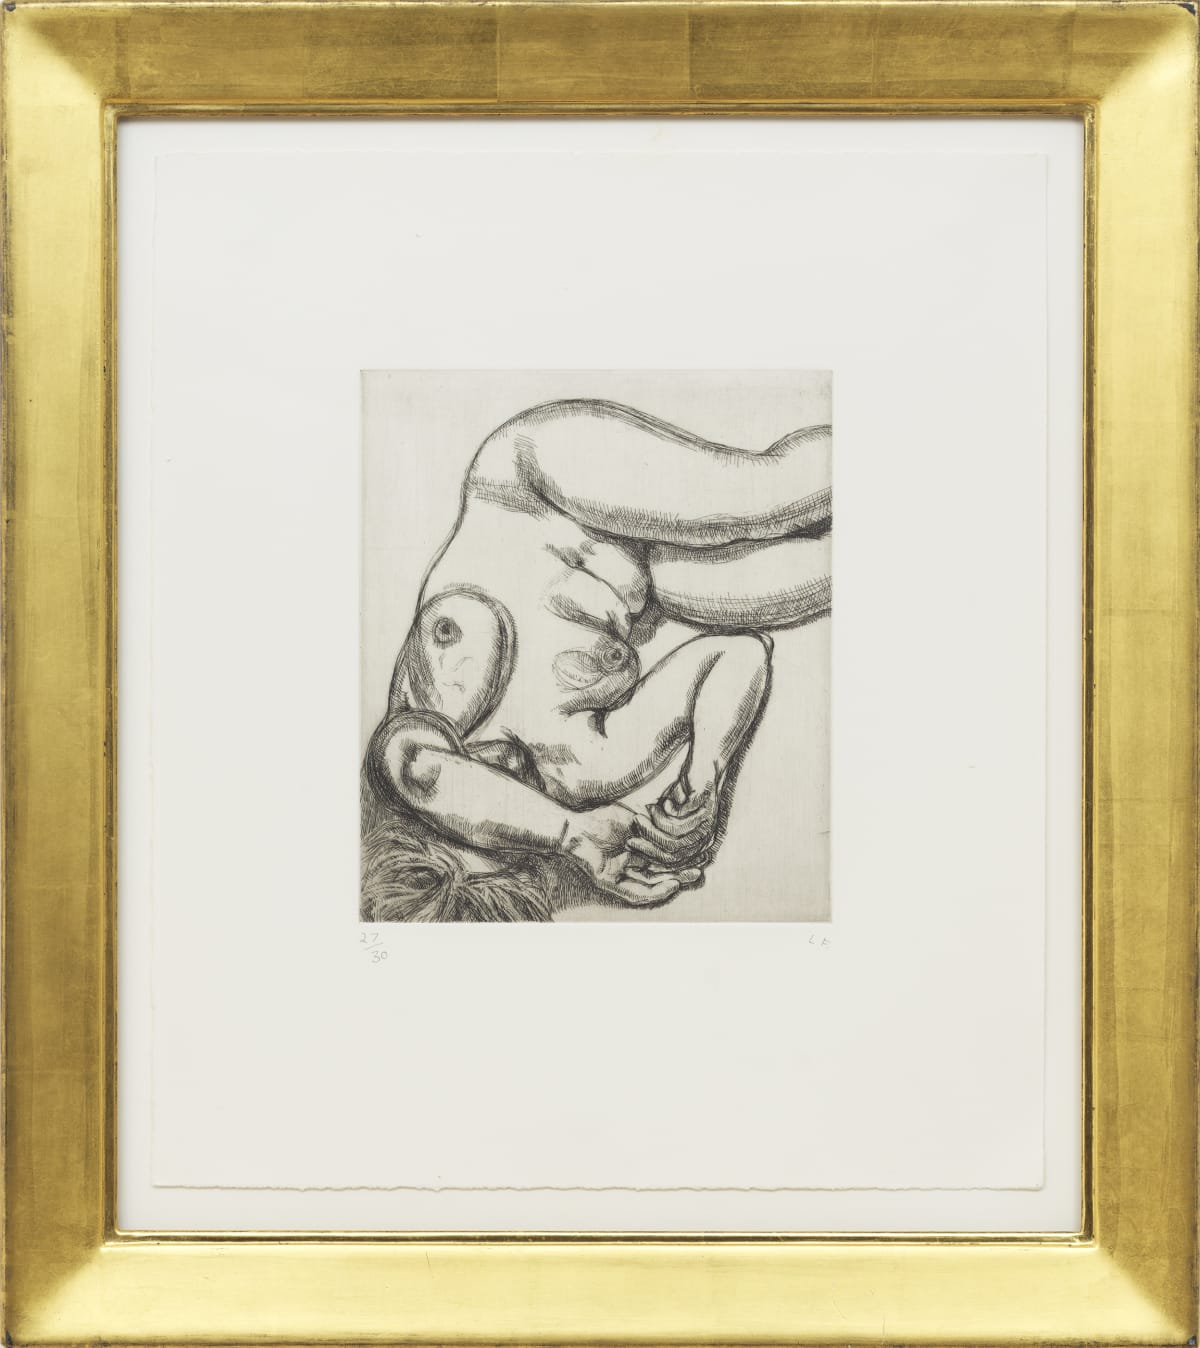 Lucian Freud Woman on a bed, 1991 Etching edition of 30 44 x 39.3 cm